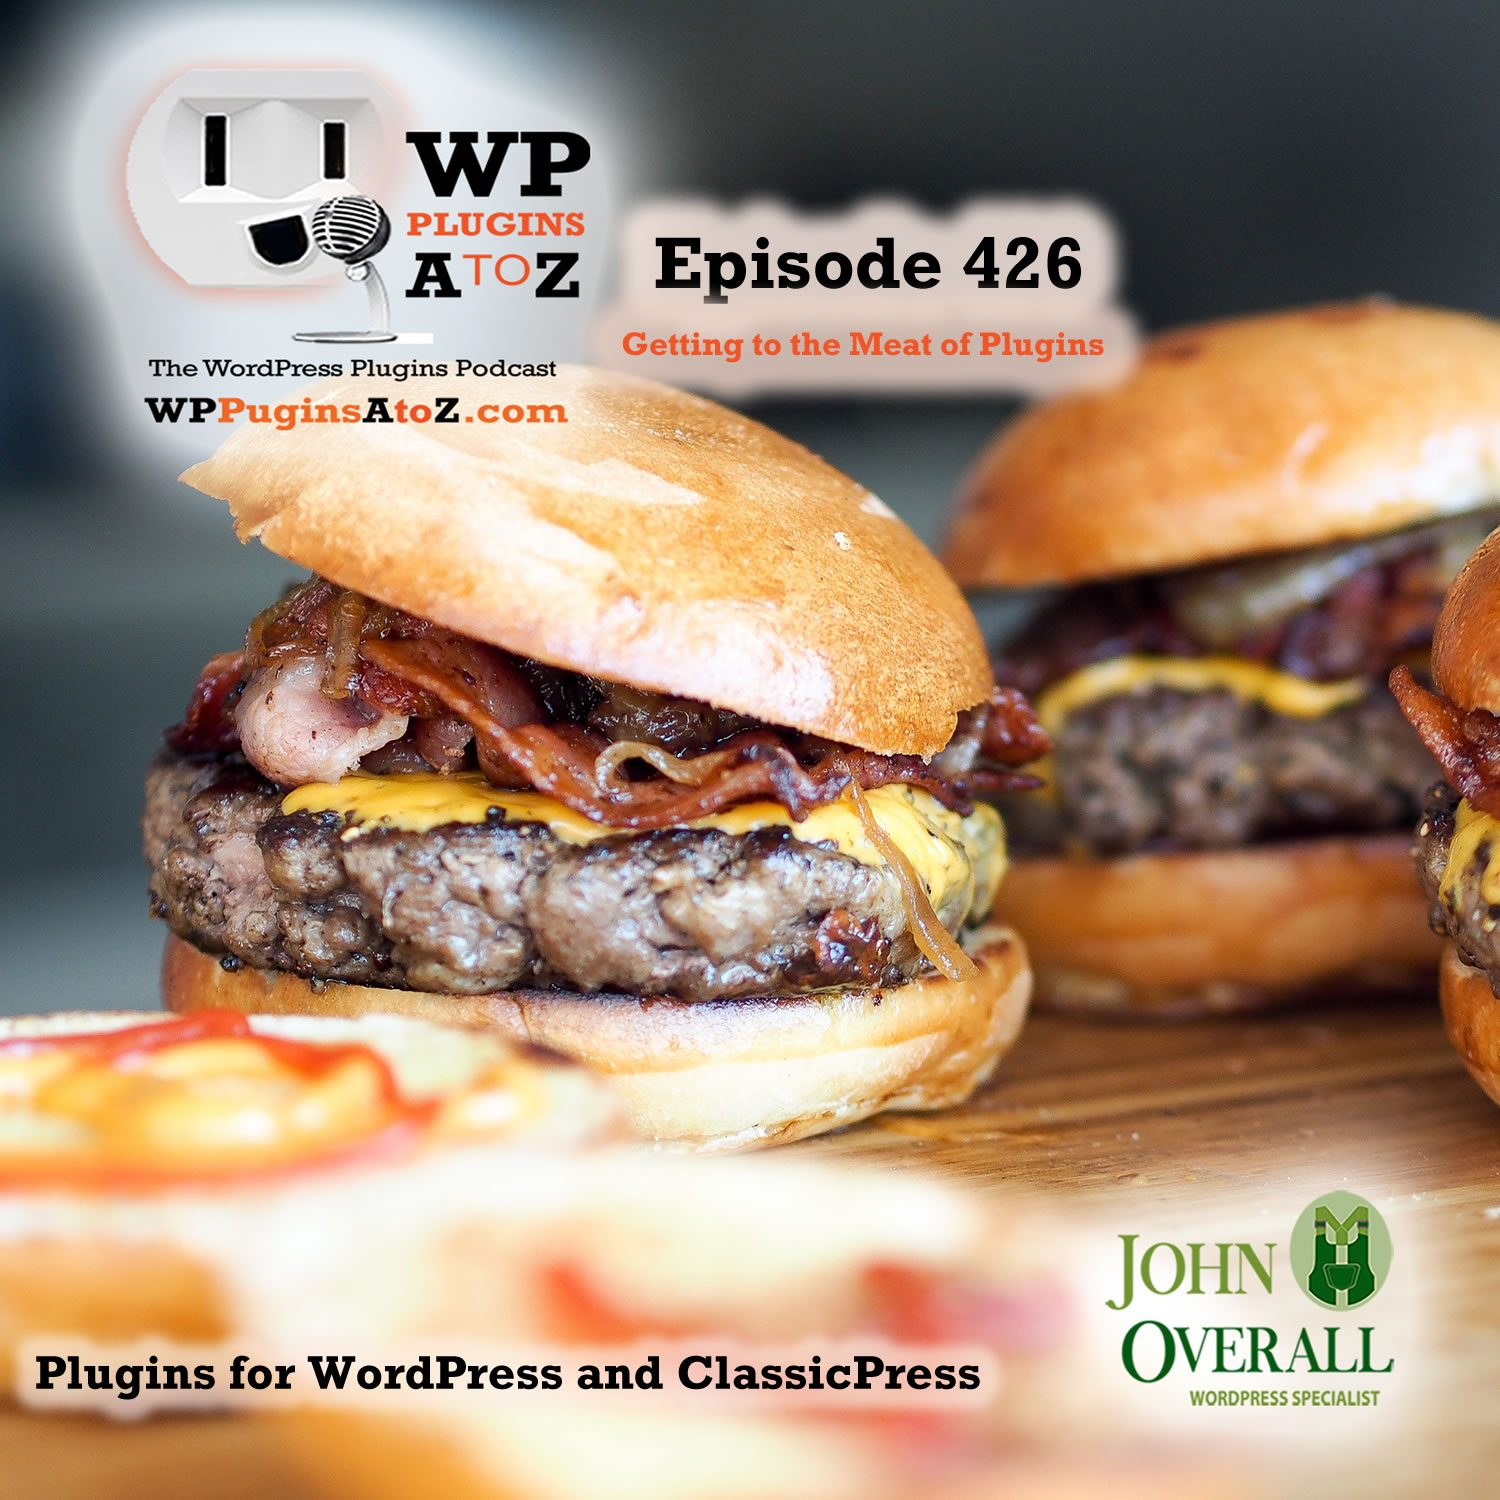 It's Episode 426 and I've got plugins for Logging in as a User, User Directories, Anti-Spam and ClassicPress Options. It's all coming up on WordPress Plugins A-Z!